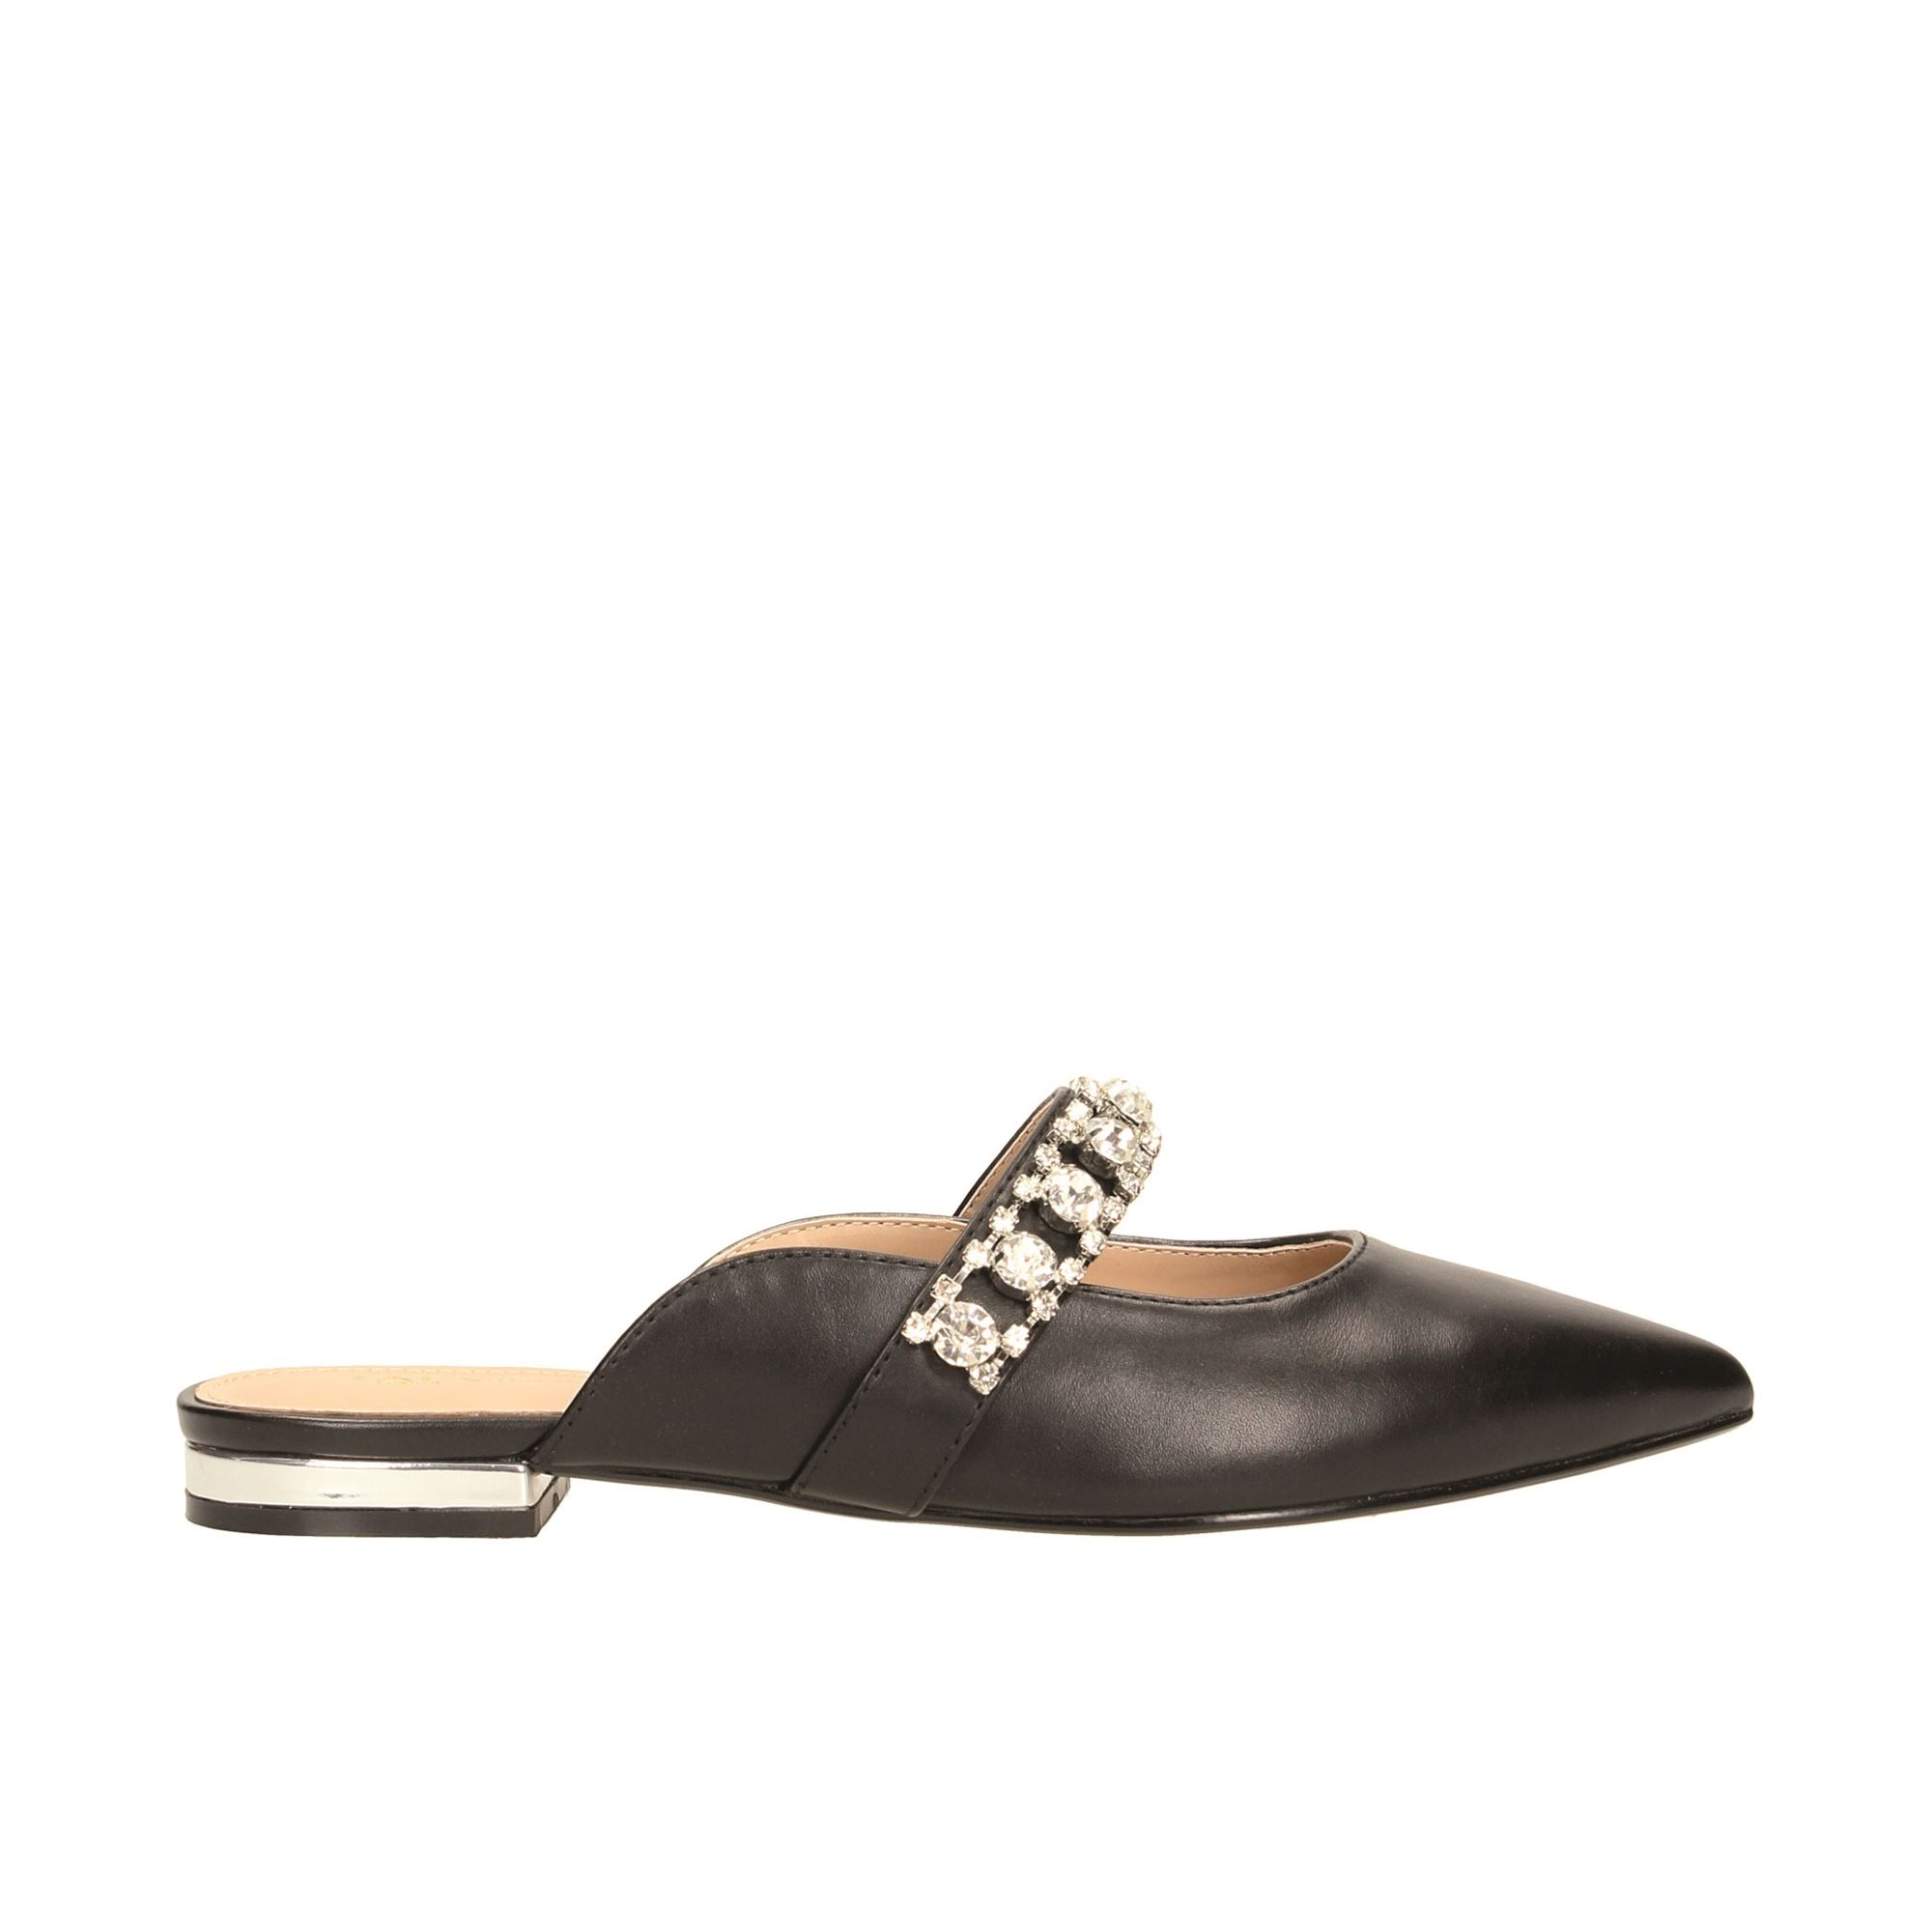 Tata Italia Shoes Woman Sabot Black 1949A-9